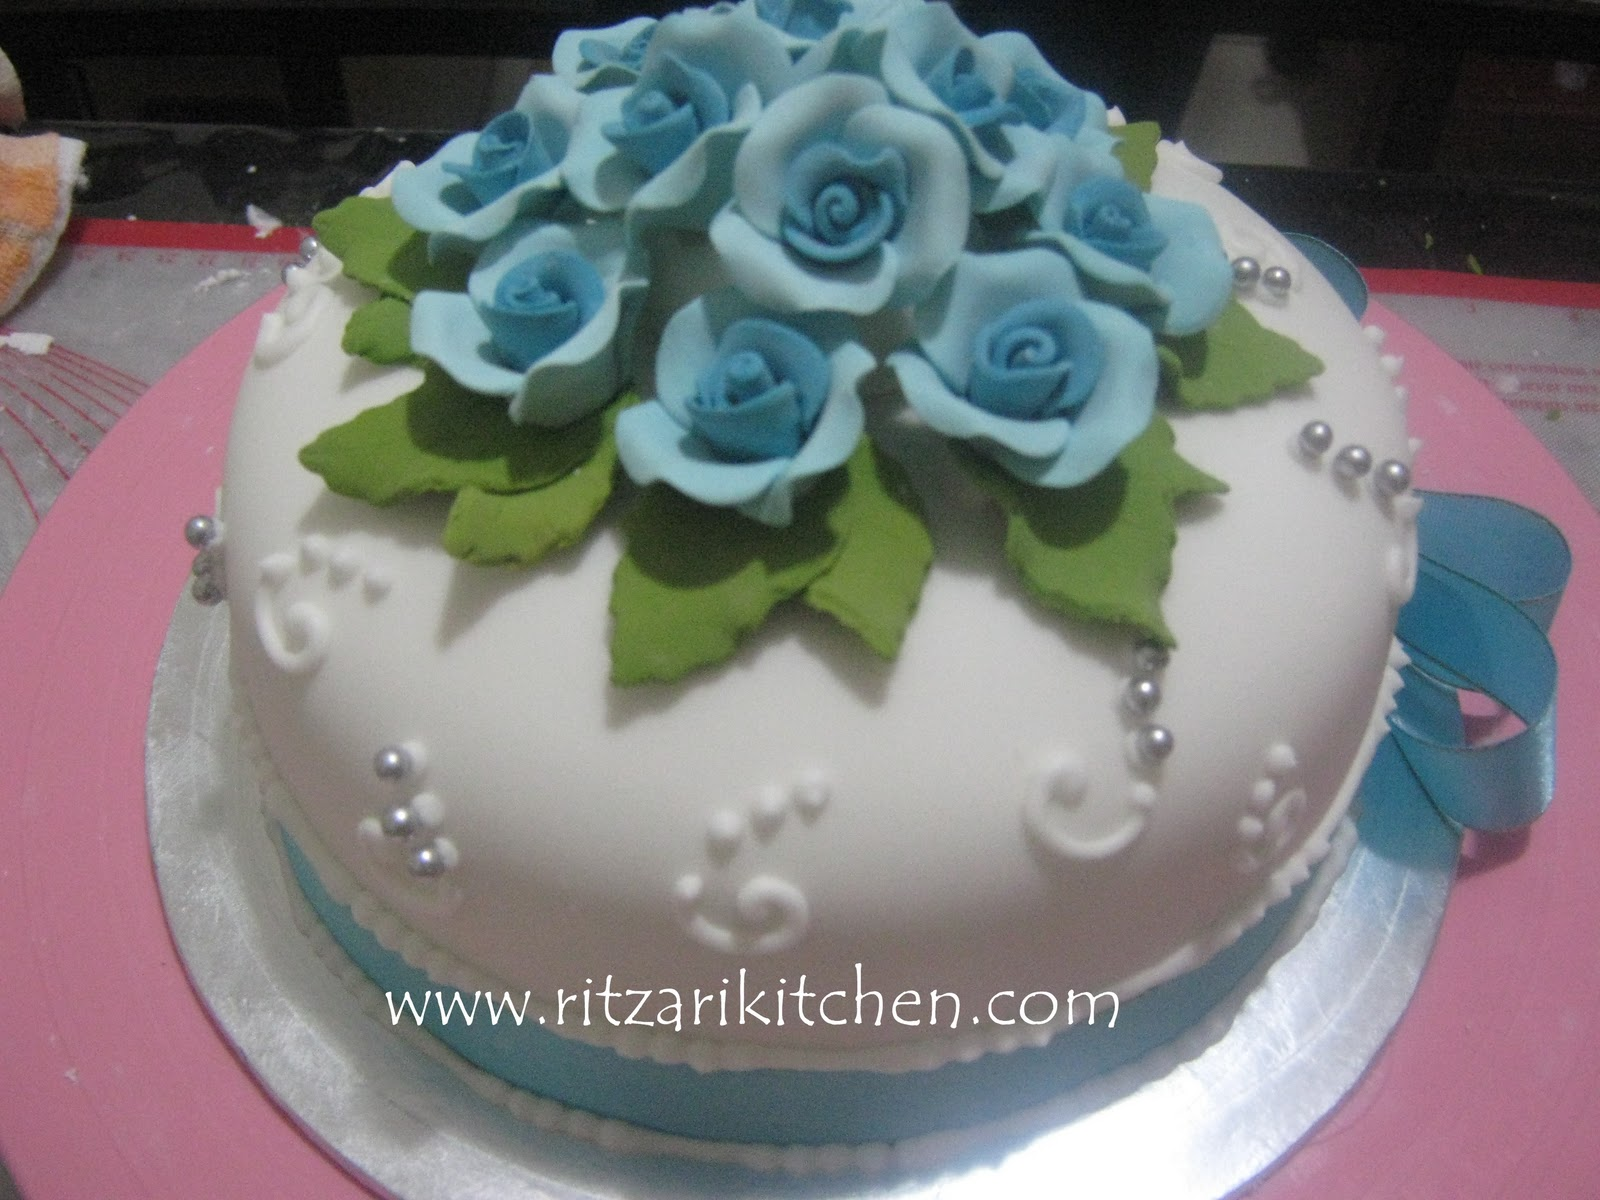 Pin Ritzarikitchen A Few Cake Decorating Ideas For The ...